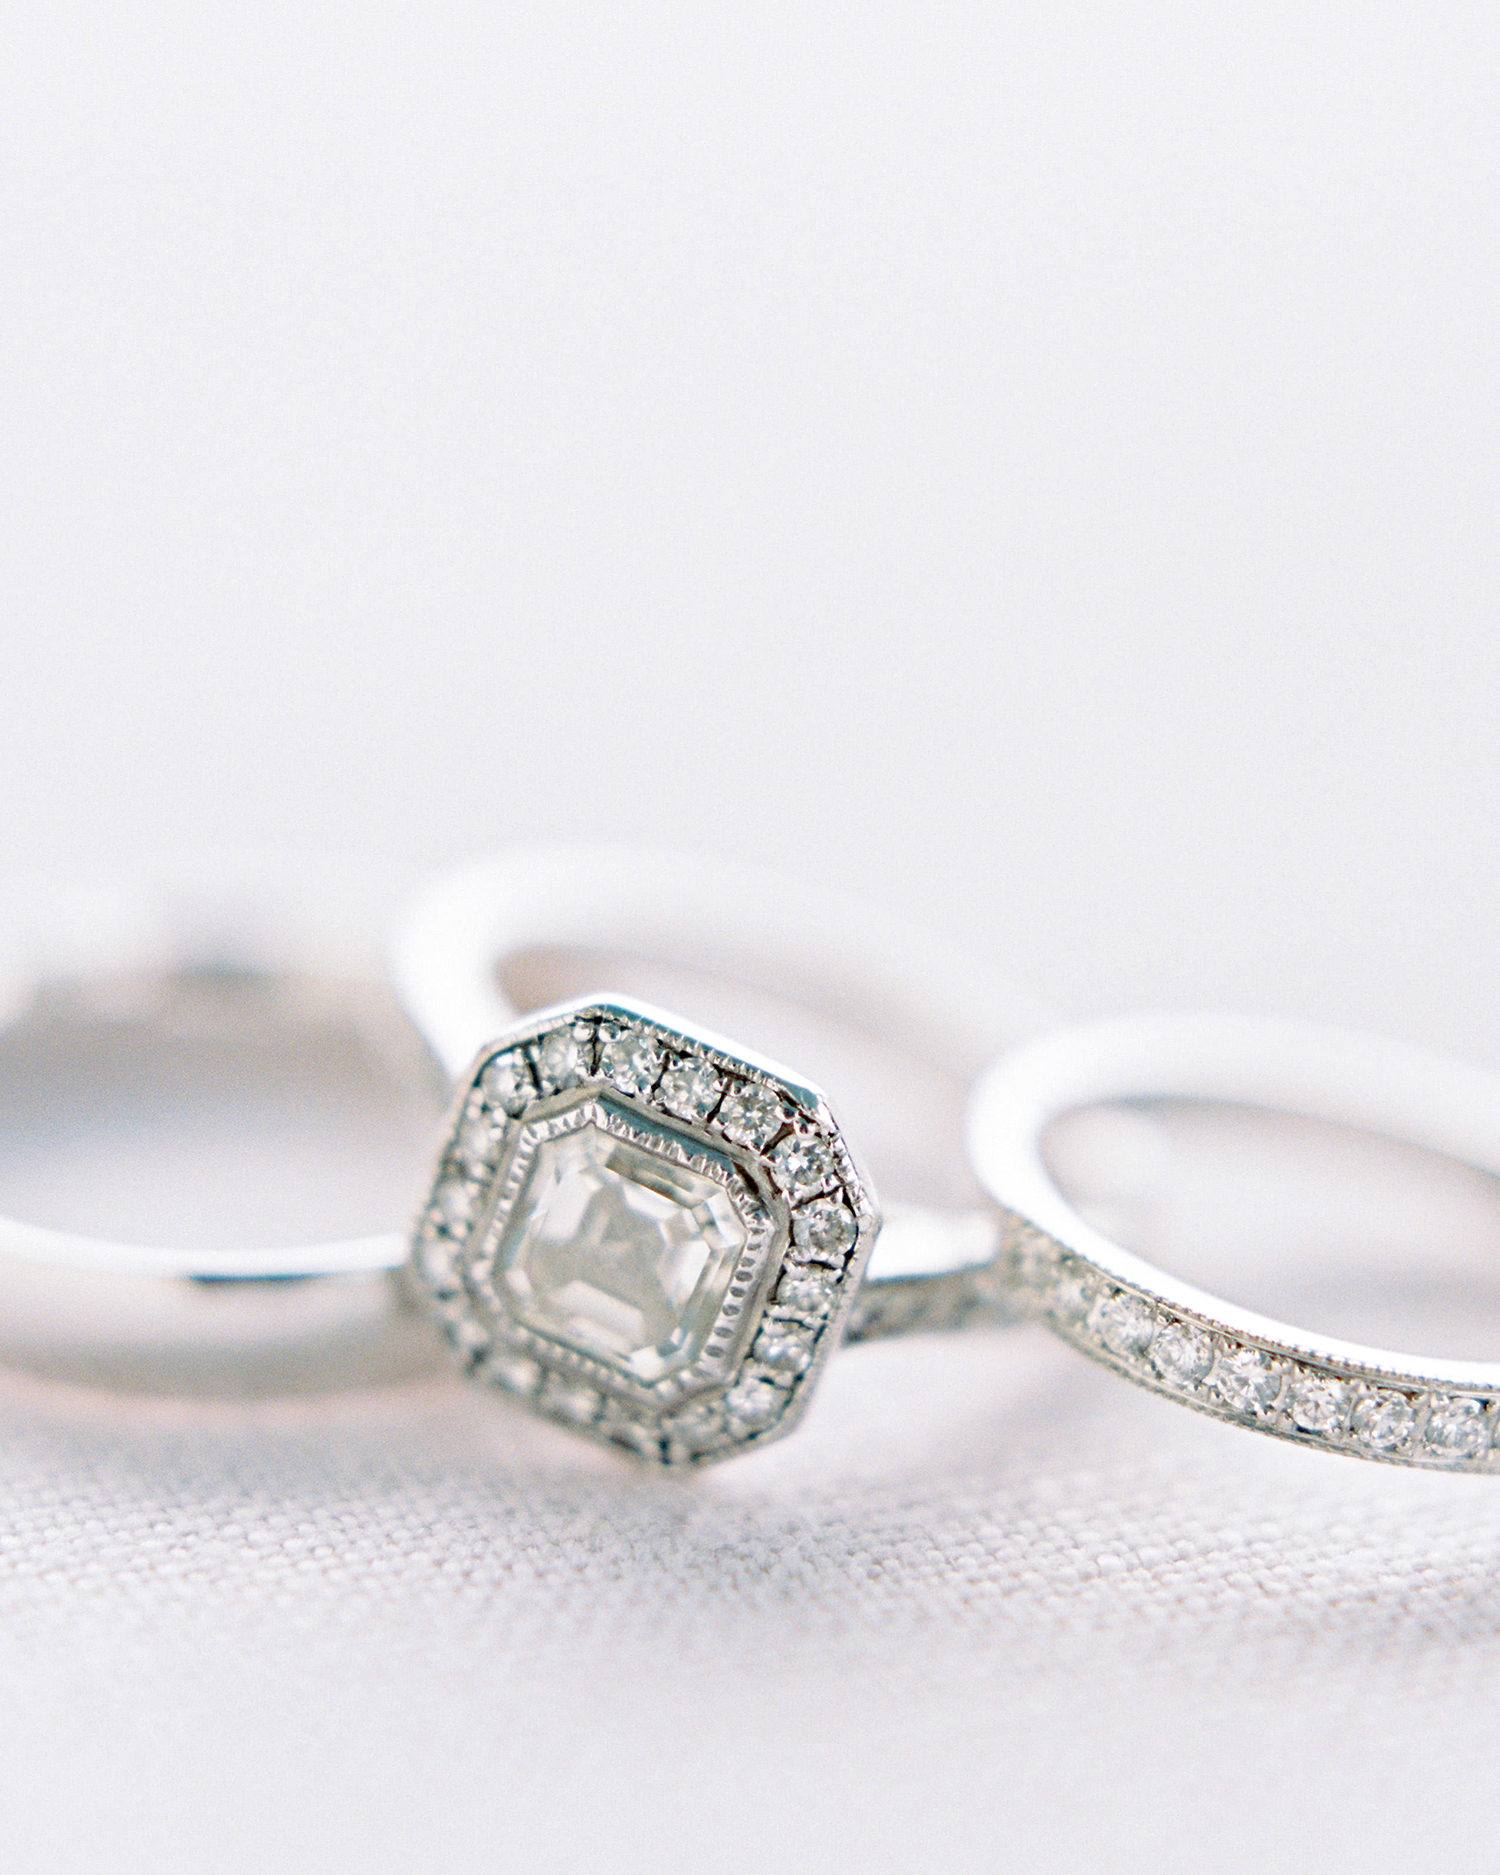 amanda alex wedding rings